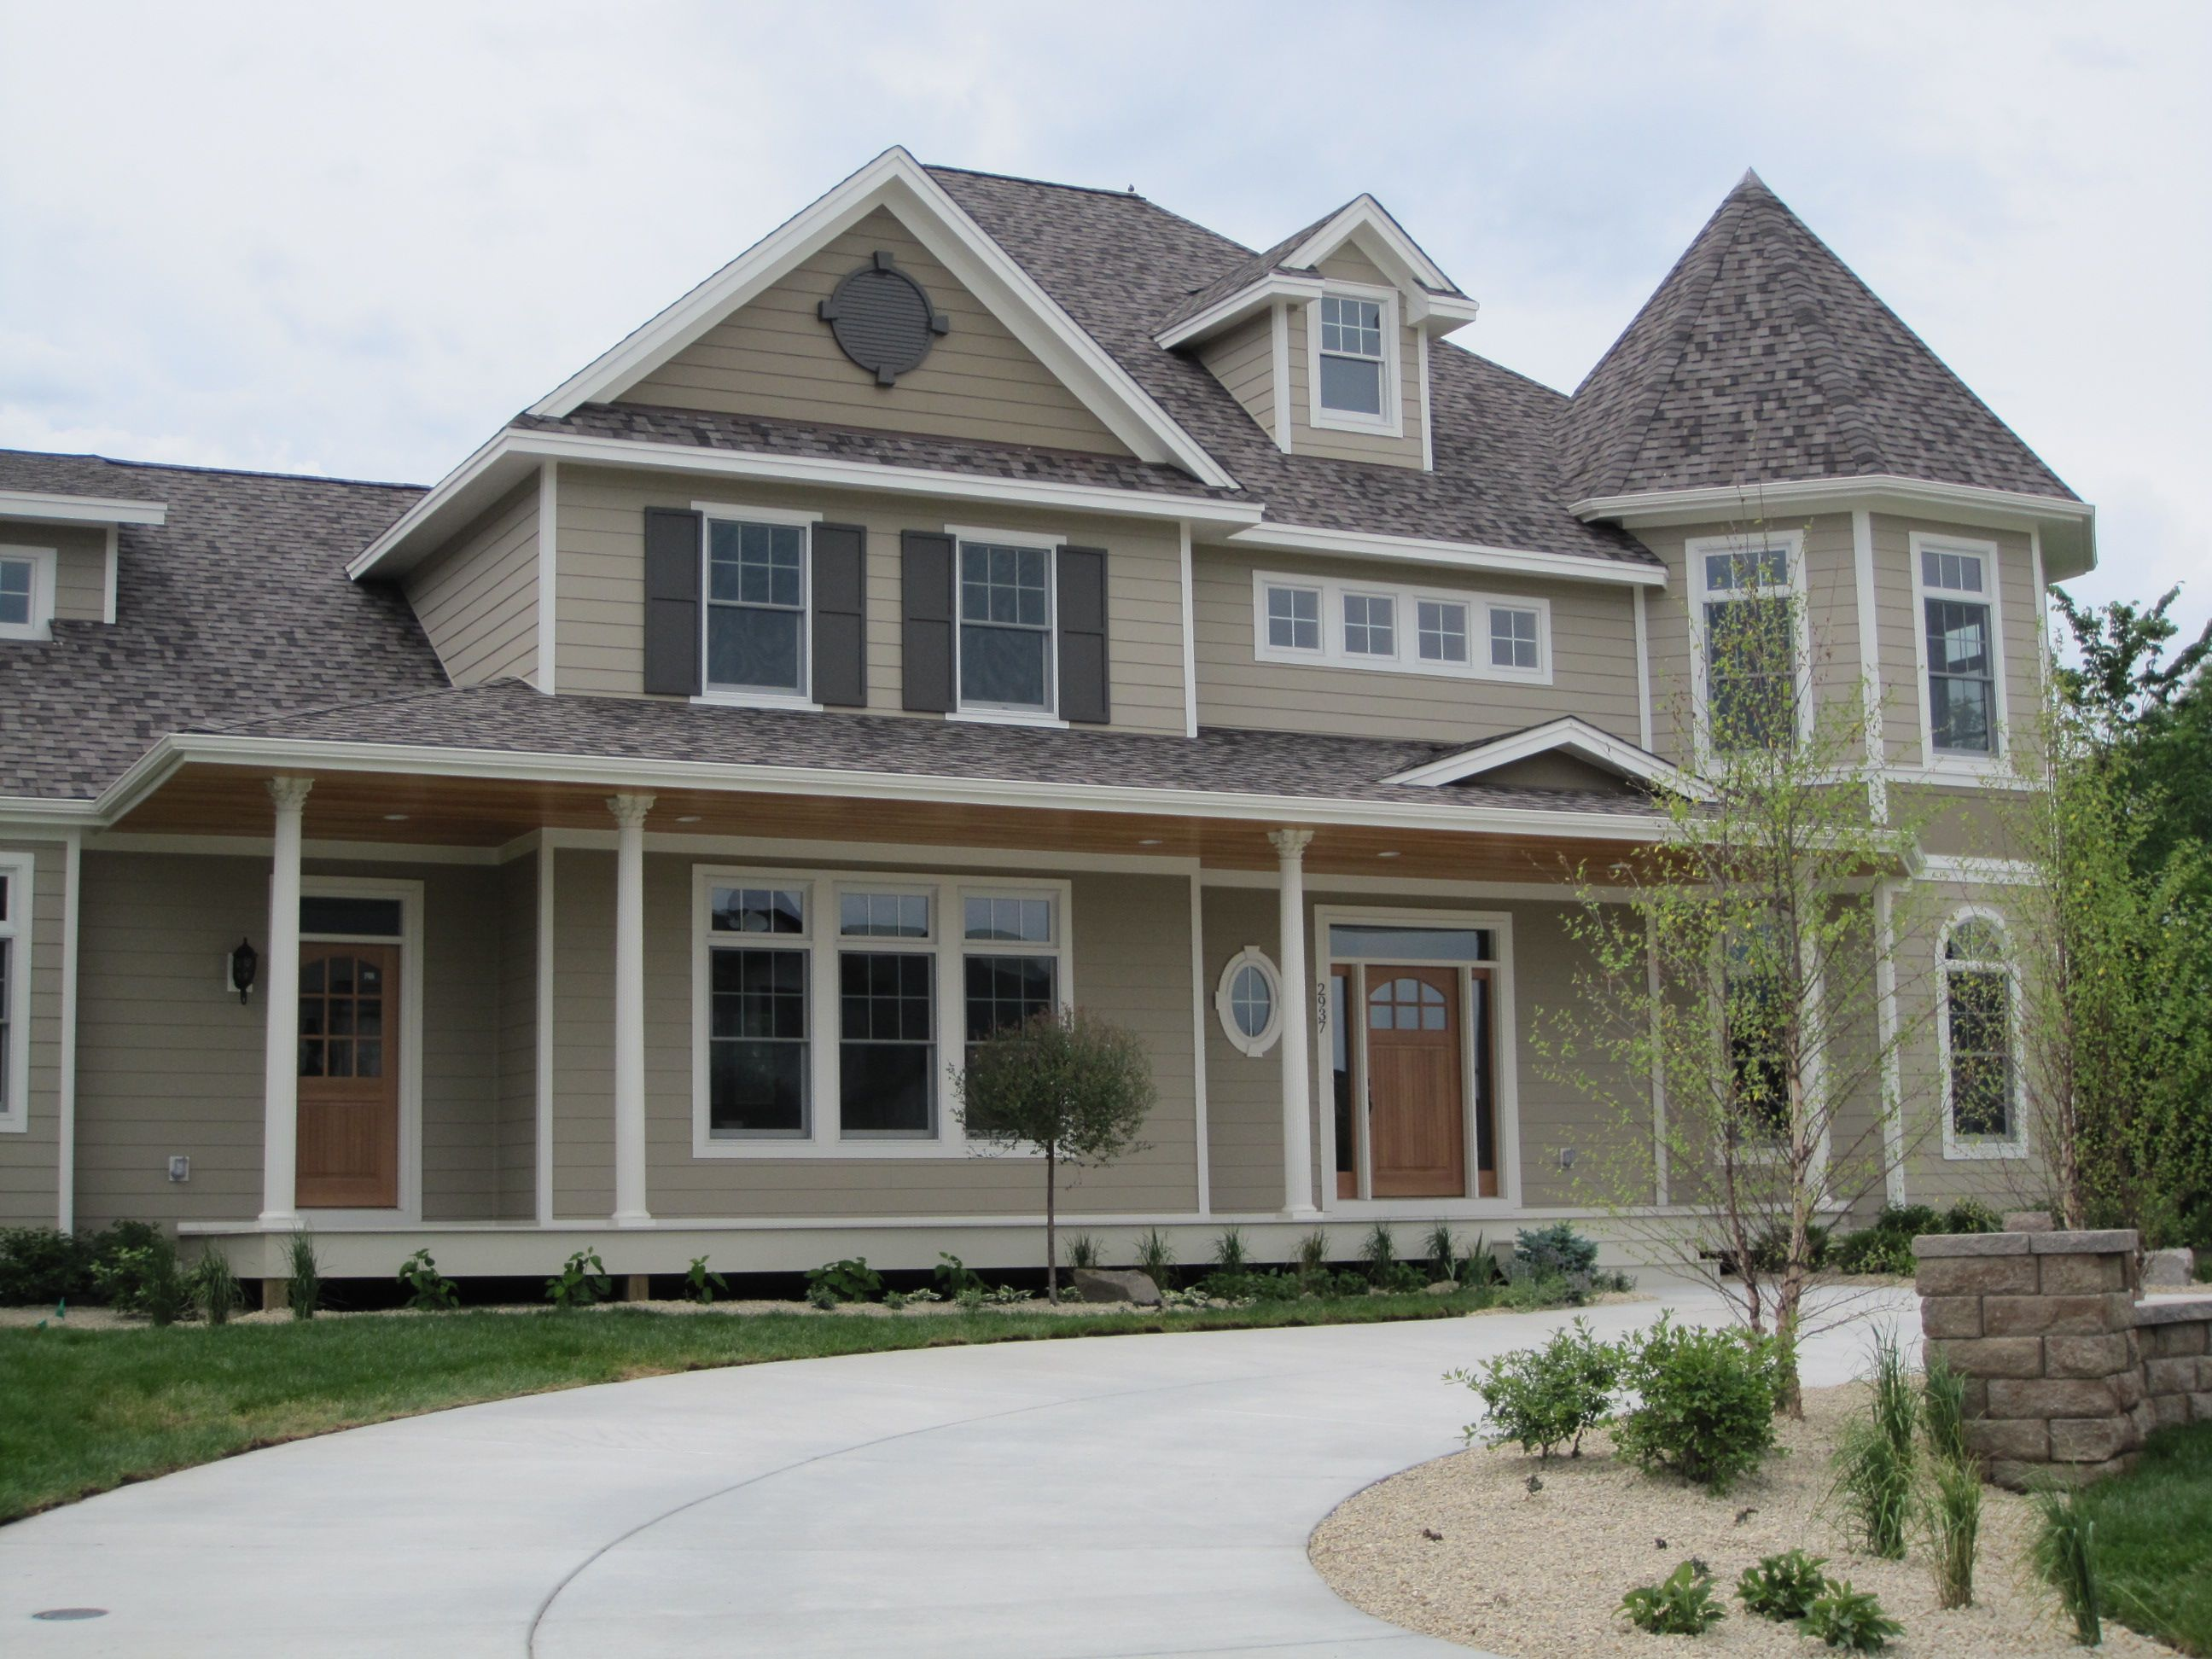 Awe Inspiring 17 Best Images About Exterior Paint Colors On Pinterest Exterior Largest Home Design Picture Inspirations Pitcheantrous